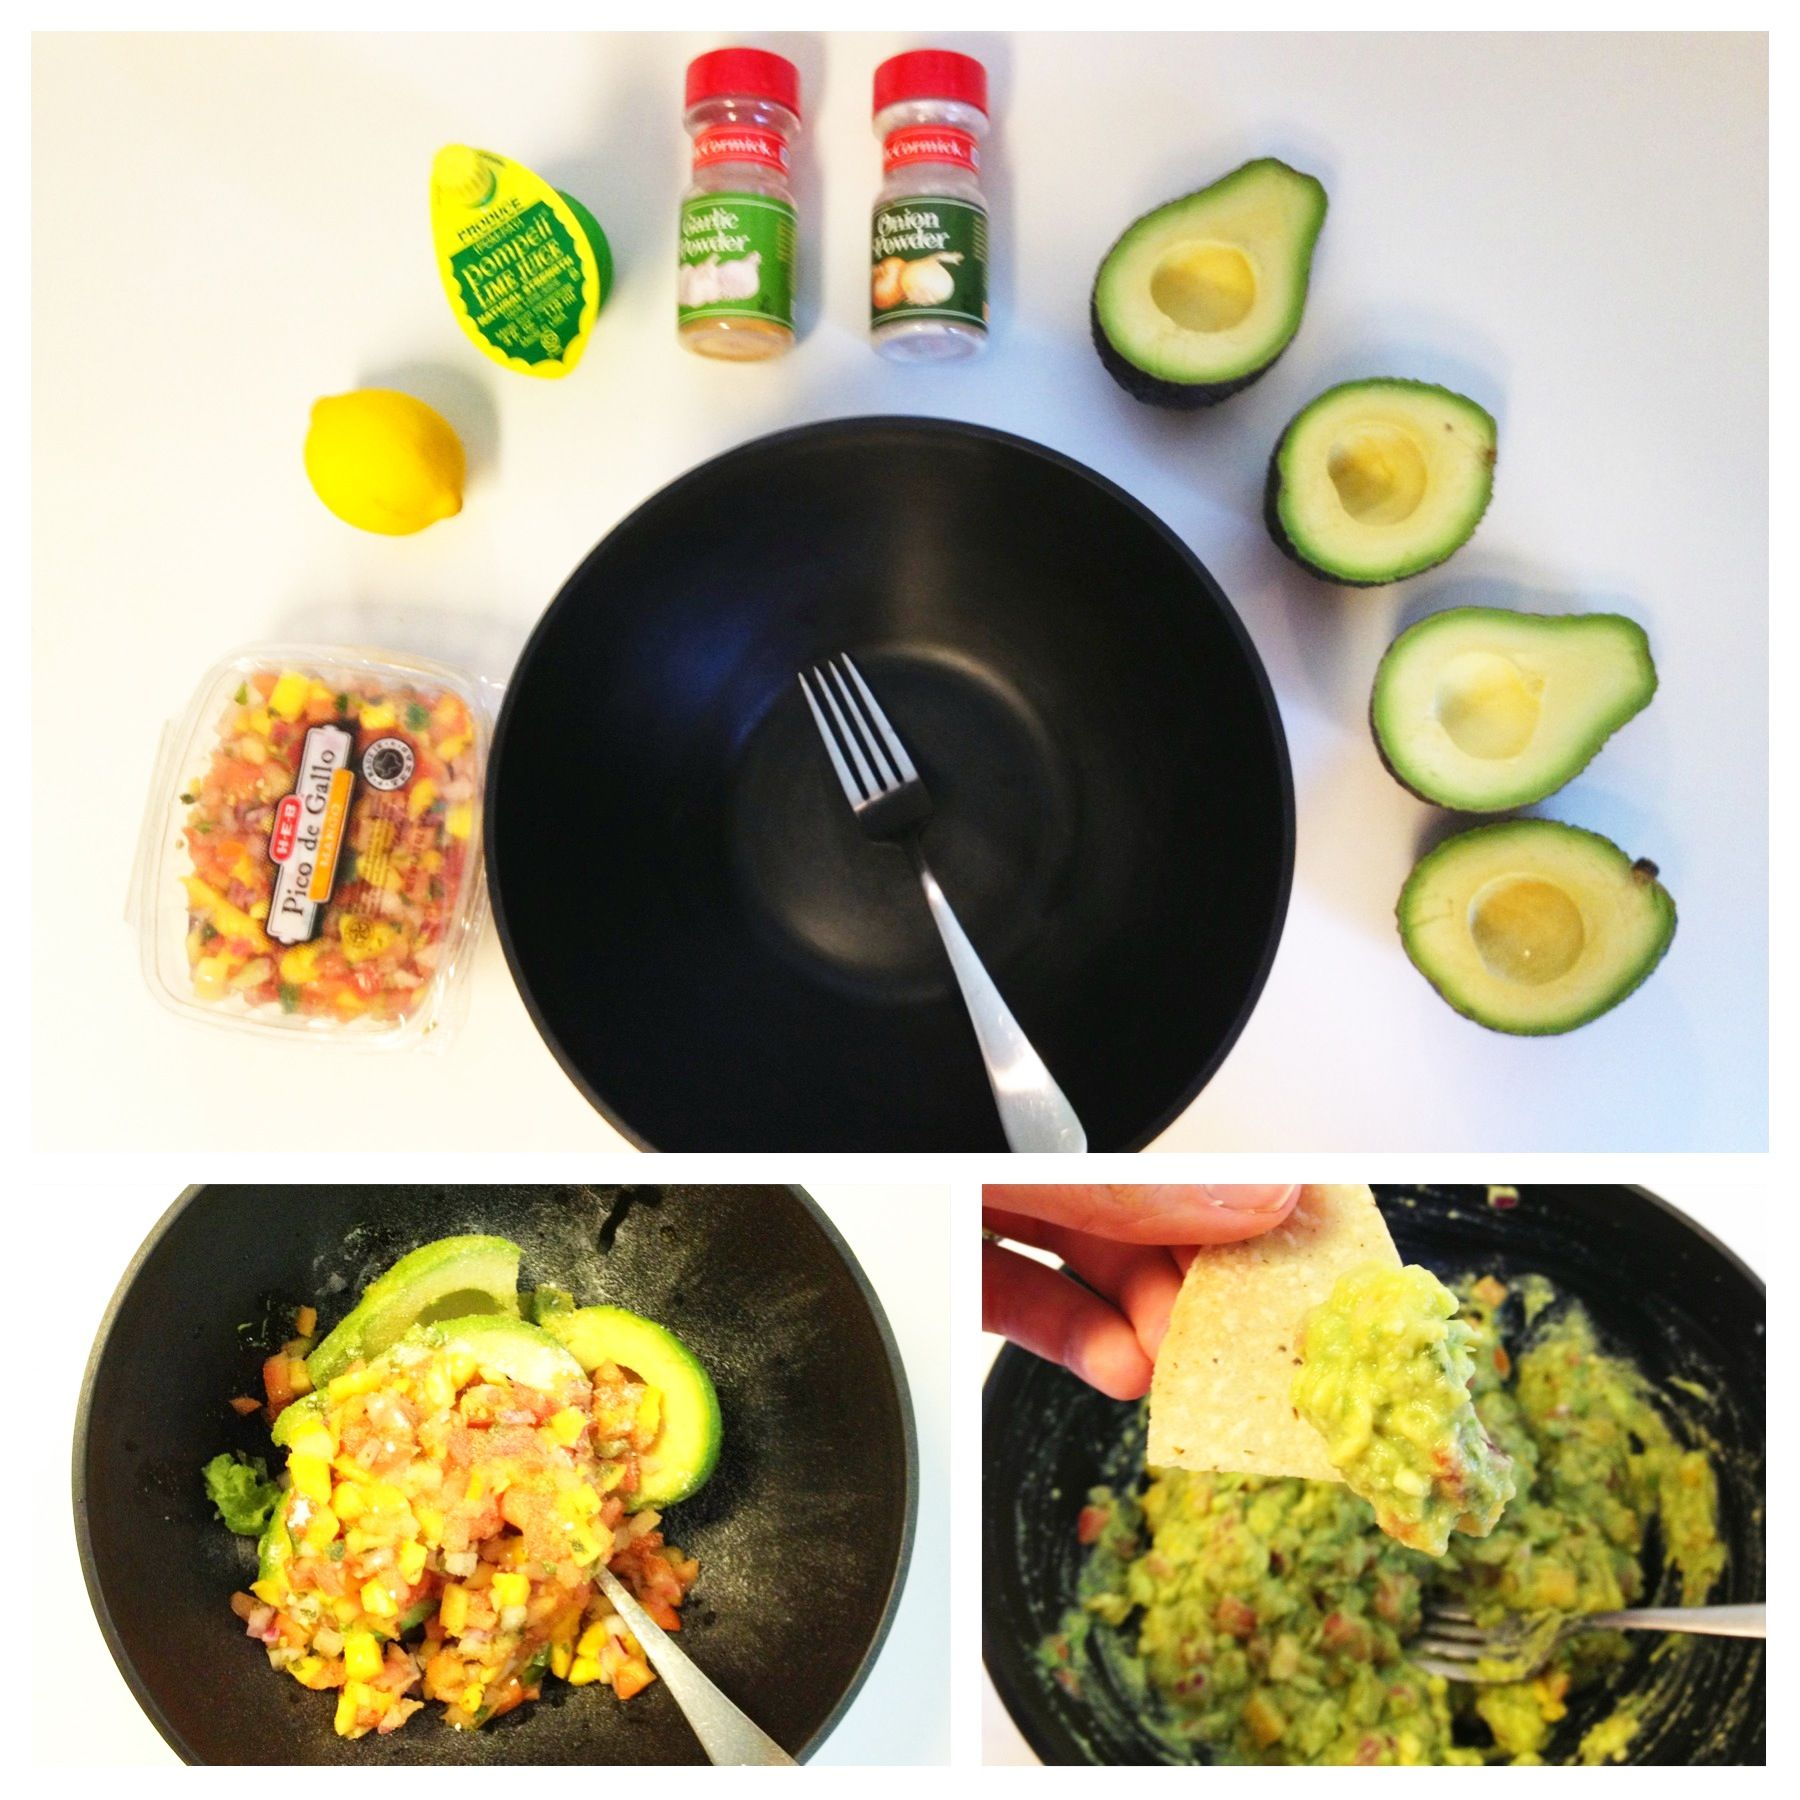 A guaranteed hit for guacamole! I never used to like it and then HEB's mango pico changed everything. Turns out it was a texture issue.  Email me for the exact recipe!  Lgfitandfree@gmail.com